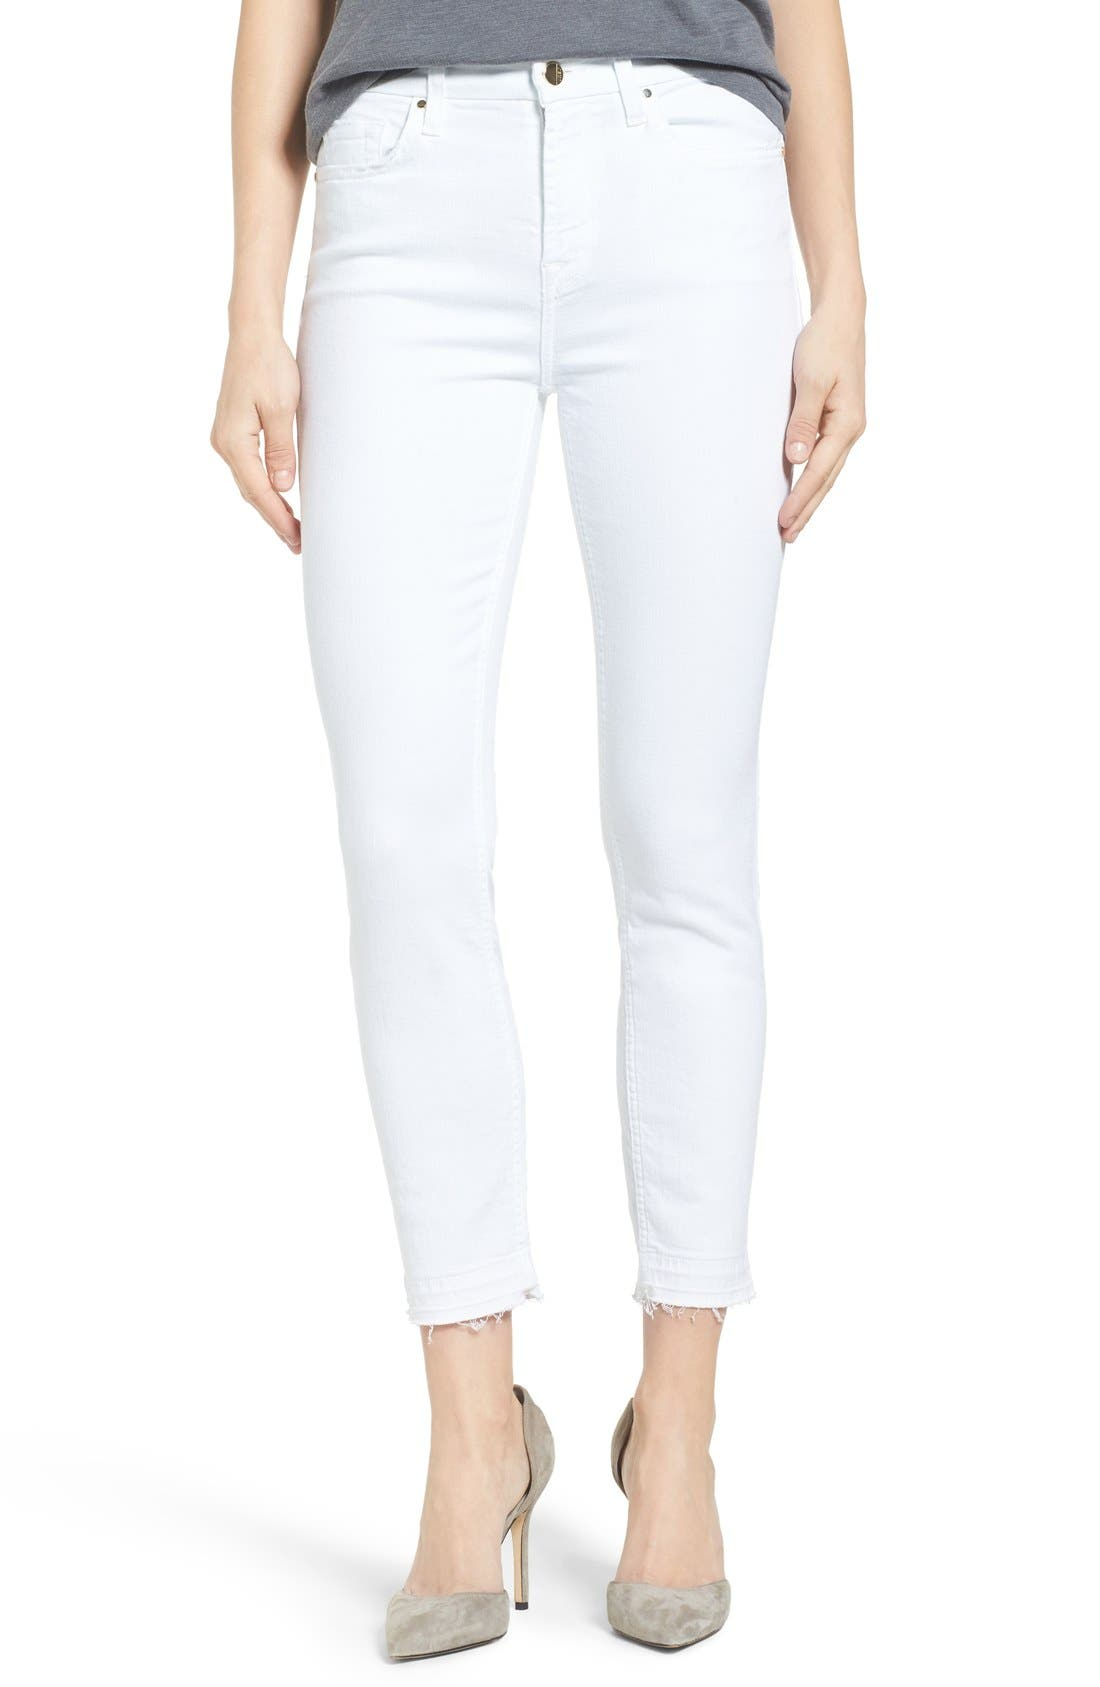 JEN7 BY 7 FOR ALL MANKIND Release Hem Stretch Skinny Ankle Jeans, Main, color, 101